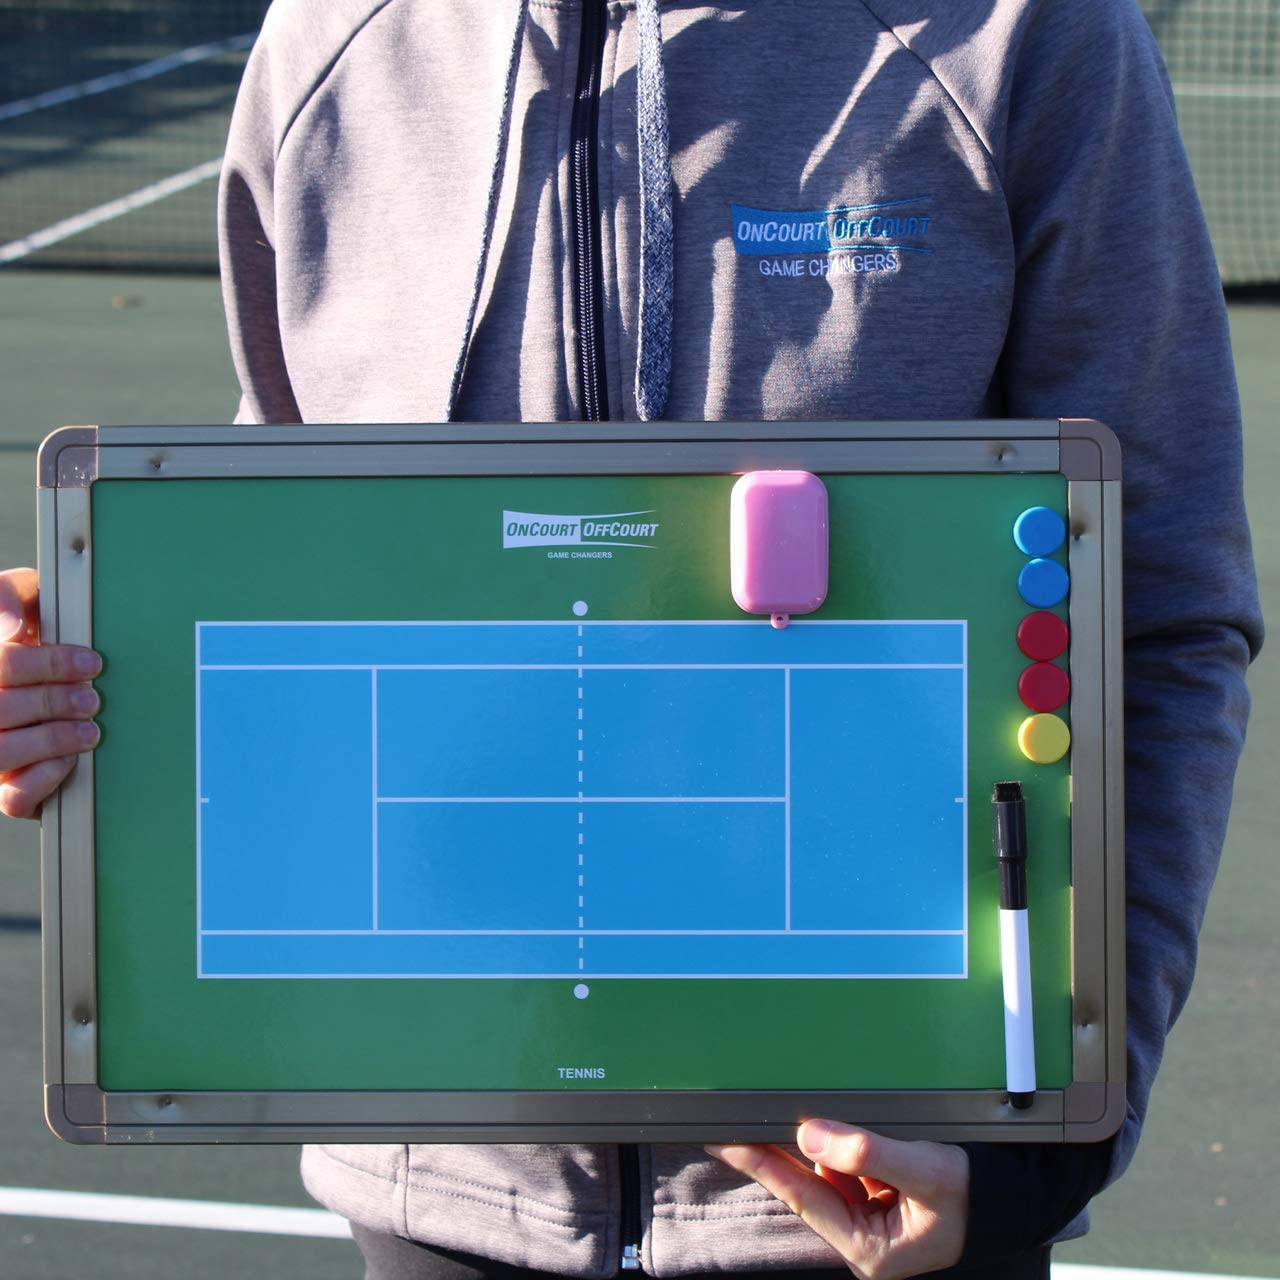 Oncourt Offcourt Magnetic and trocken Erase Tennis Coach's Board - Comes with Dry-Erase Pen and Magnetic Dots